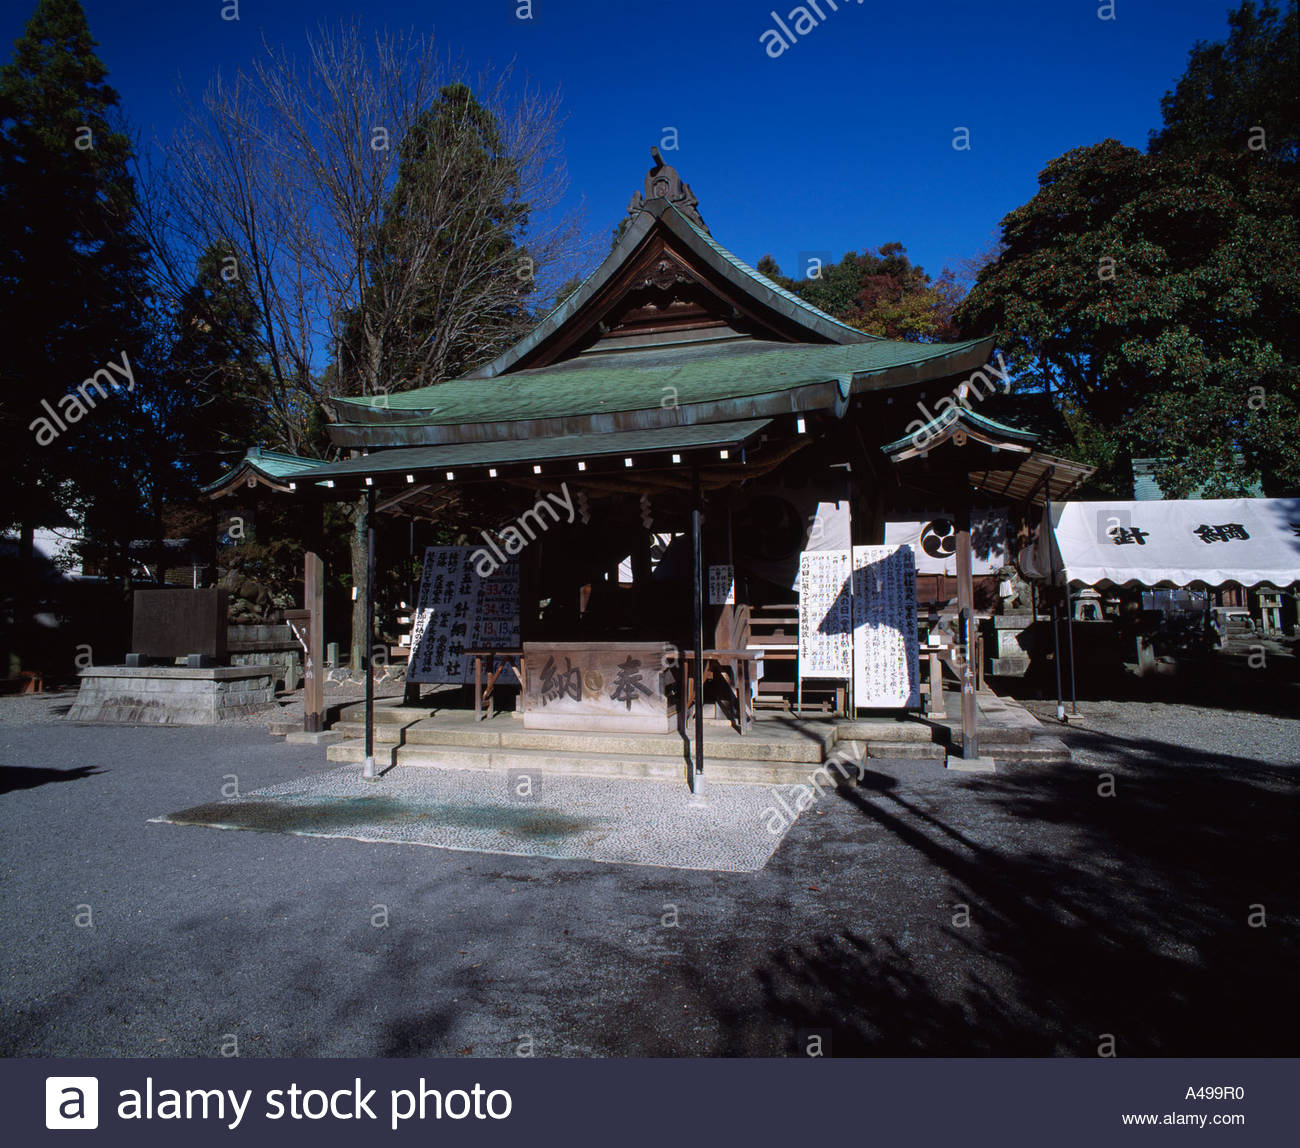 Haritsuna shrine Inuyama Aichi Japan Blue sky Tree Plant Tent Precincts of a temple Offertory box Shrine & Haritsuna shrine Inuyama Aichi Japan Blue sky Tree Plant Tent ...